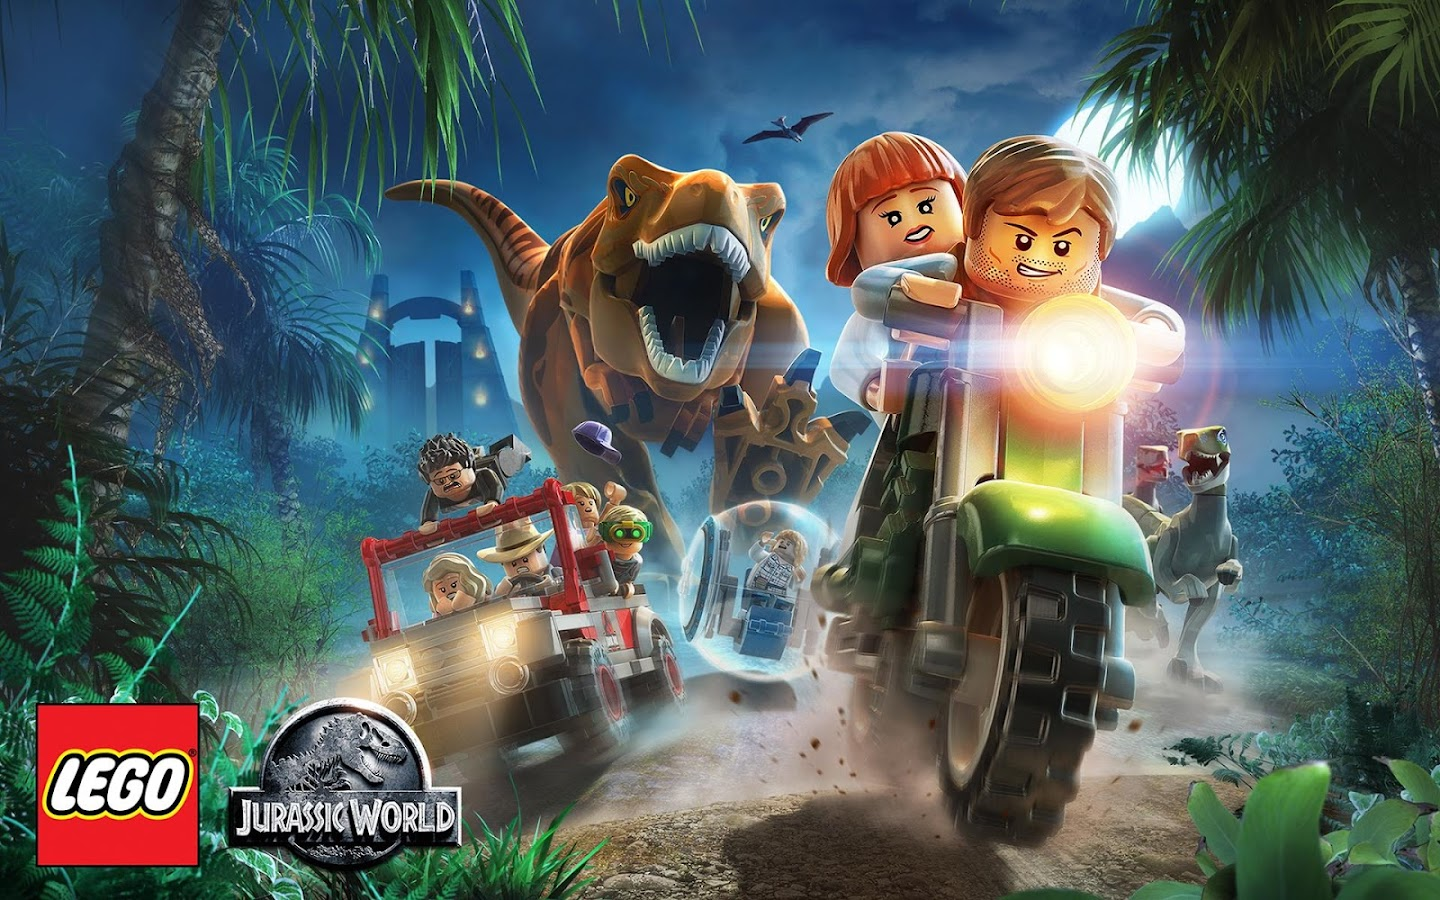 Lego jurassic world android apps on google play - Jurasic park lego ...